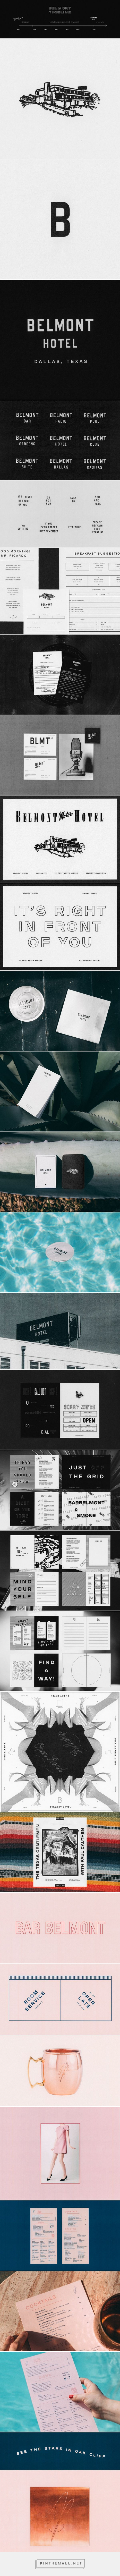 Belmont Hotel Branding Case Study - Tractorbeam - created via https://pinthemall.net